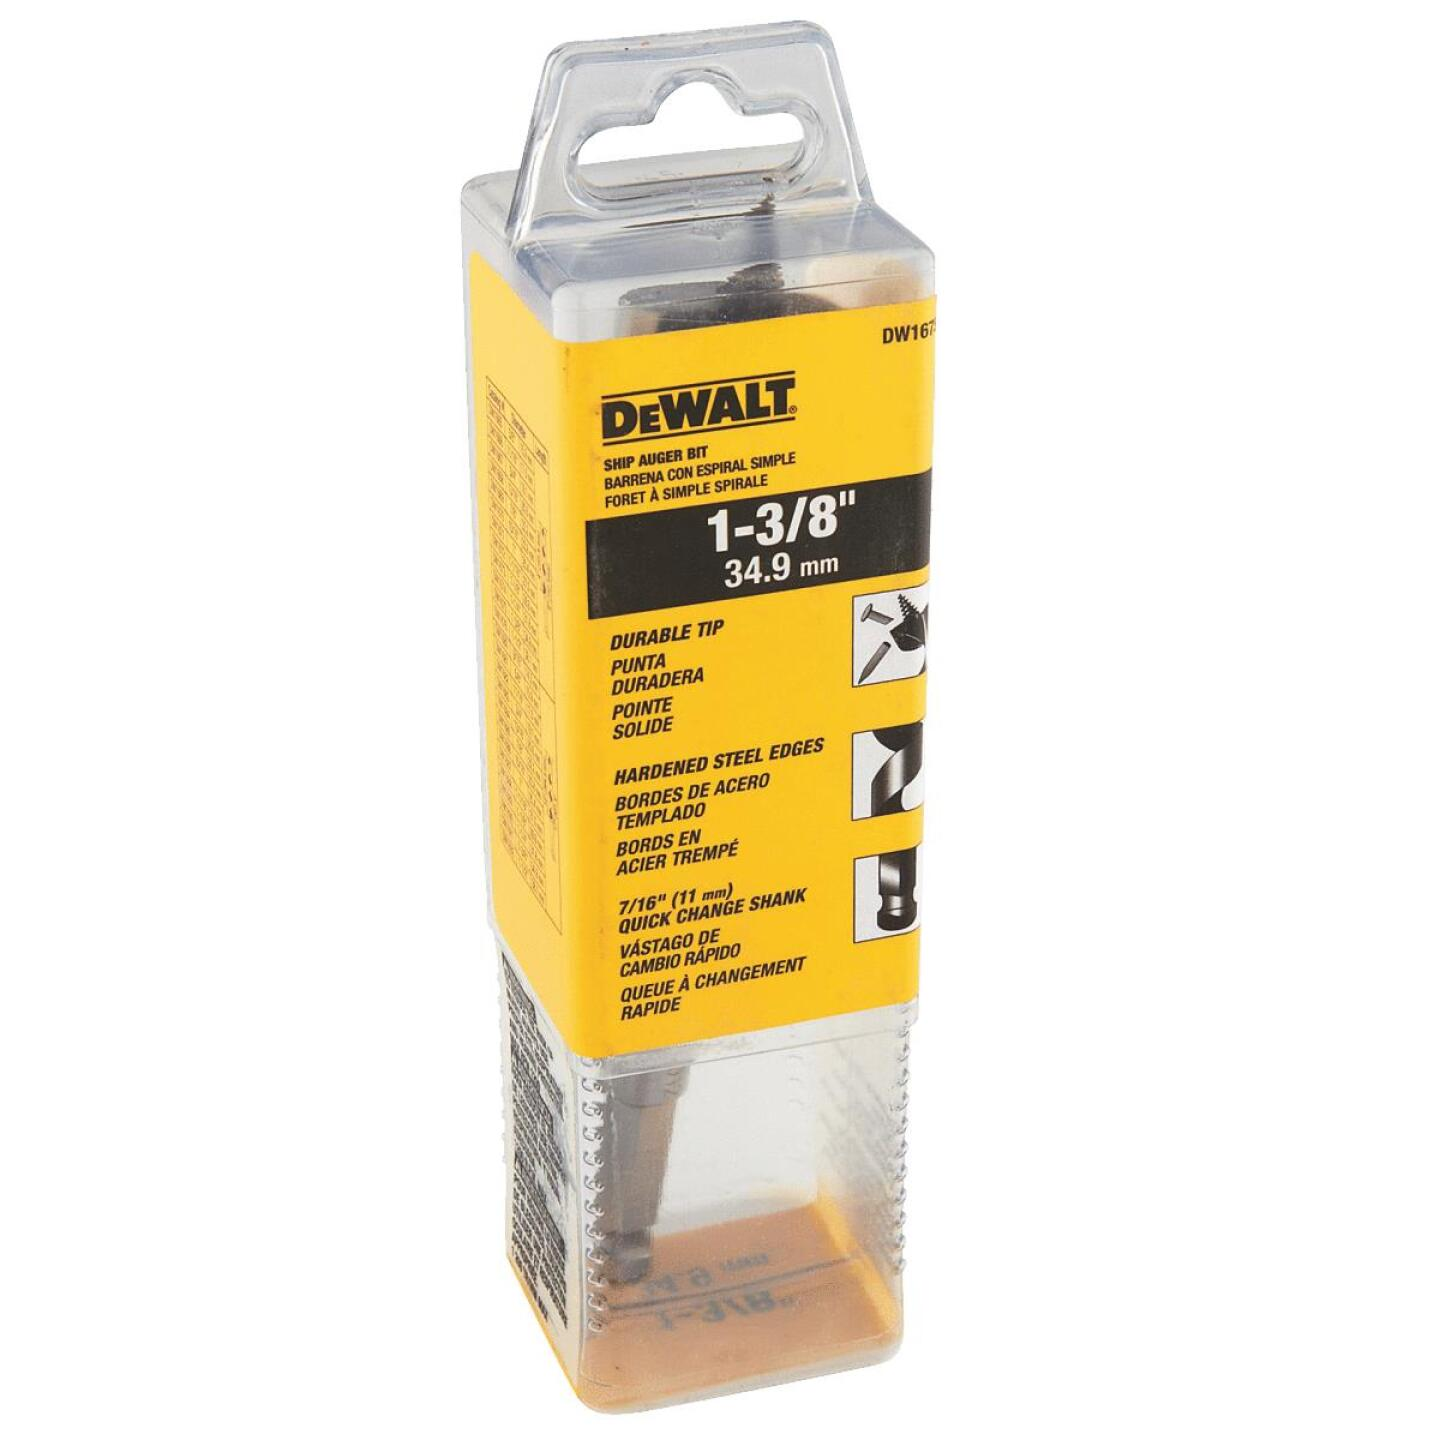 DeWalt Power Ship 1-3/8 In. x 6 In. Quick Change Auger Bit Image 2